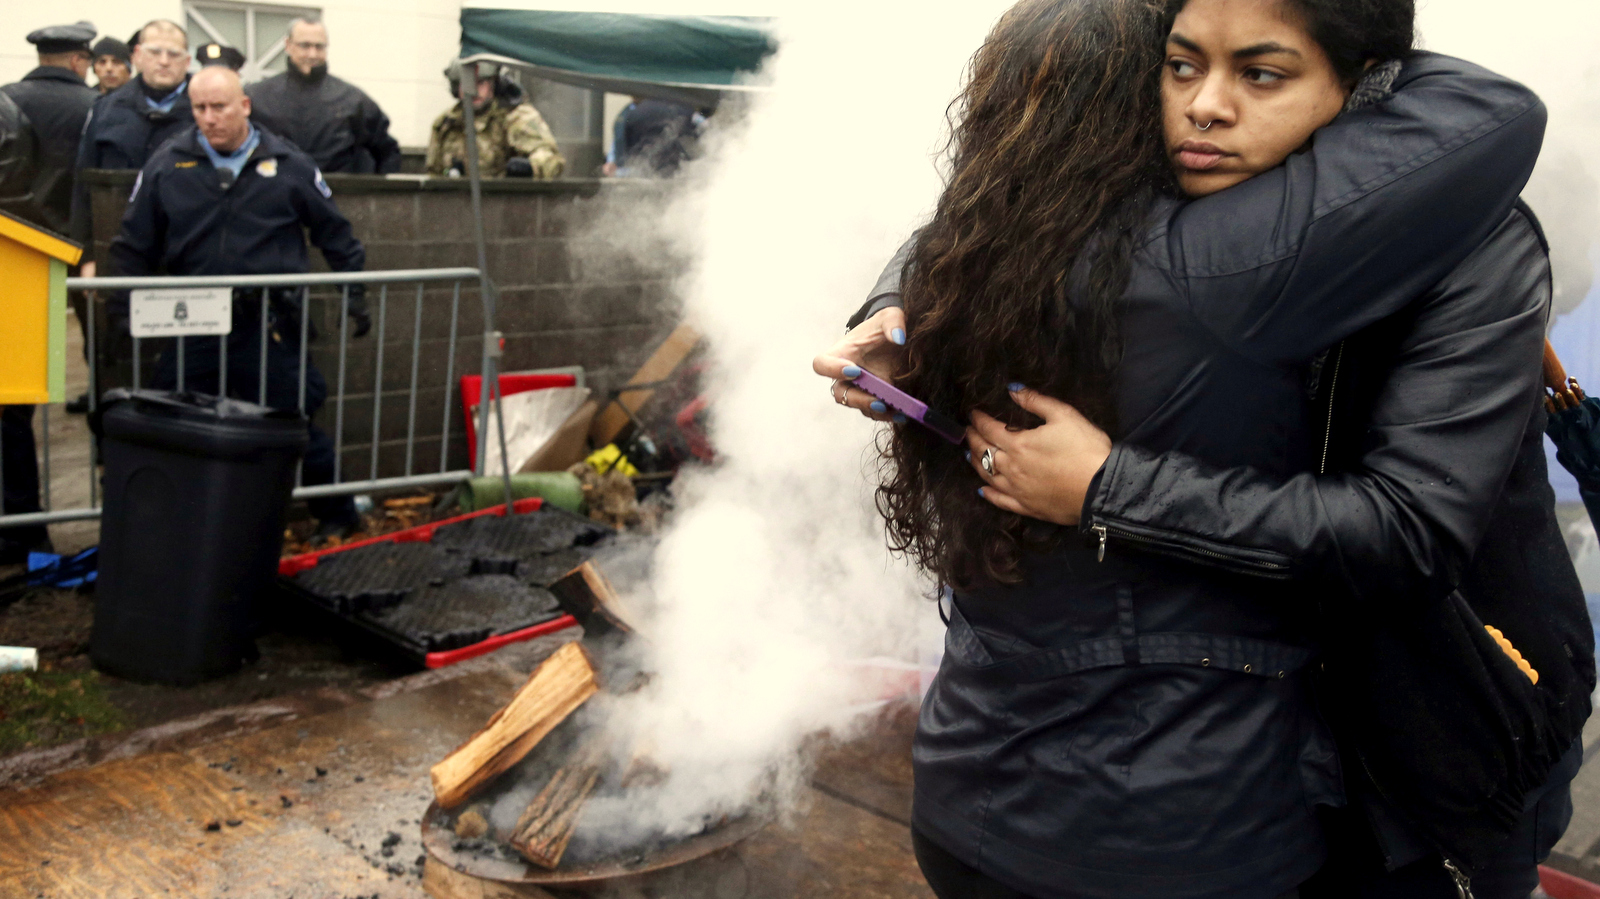 Black Lives Matter supporters embrace after Minneapolis police poured water to extinguish an encampment fire as they continued their protest, Wednesday, Nov. 18, 2015, outside the Fourth Precinct in Minneapolis. The fatal shooting of Jamar Clark, an unarmed black man by a Minneapolis police officer, has pushed racial tensions in the city's small but concentrated minority community to the fore, with the police precinct besieged by a makeshift encampment and many protesters. (AP Photo/Jim Mone)